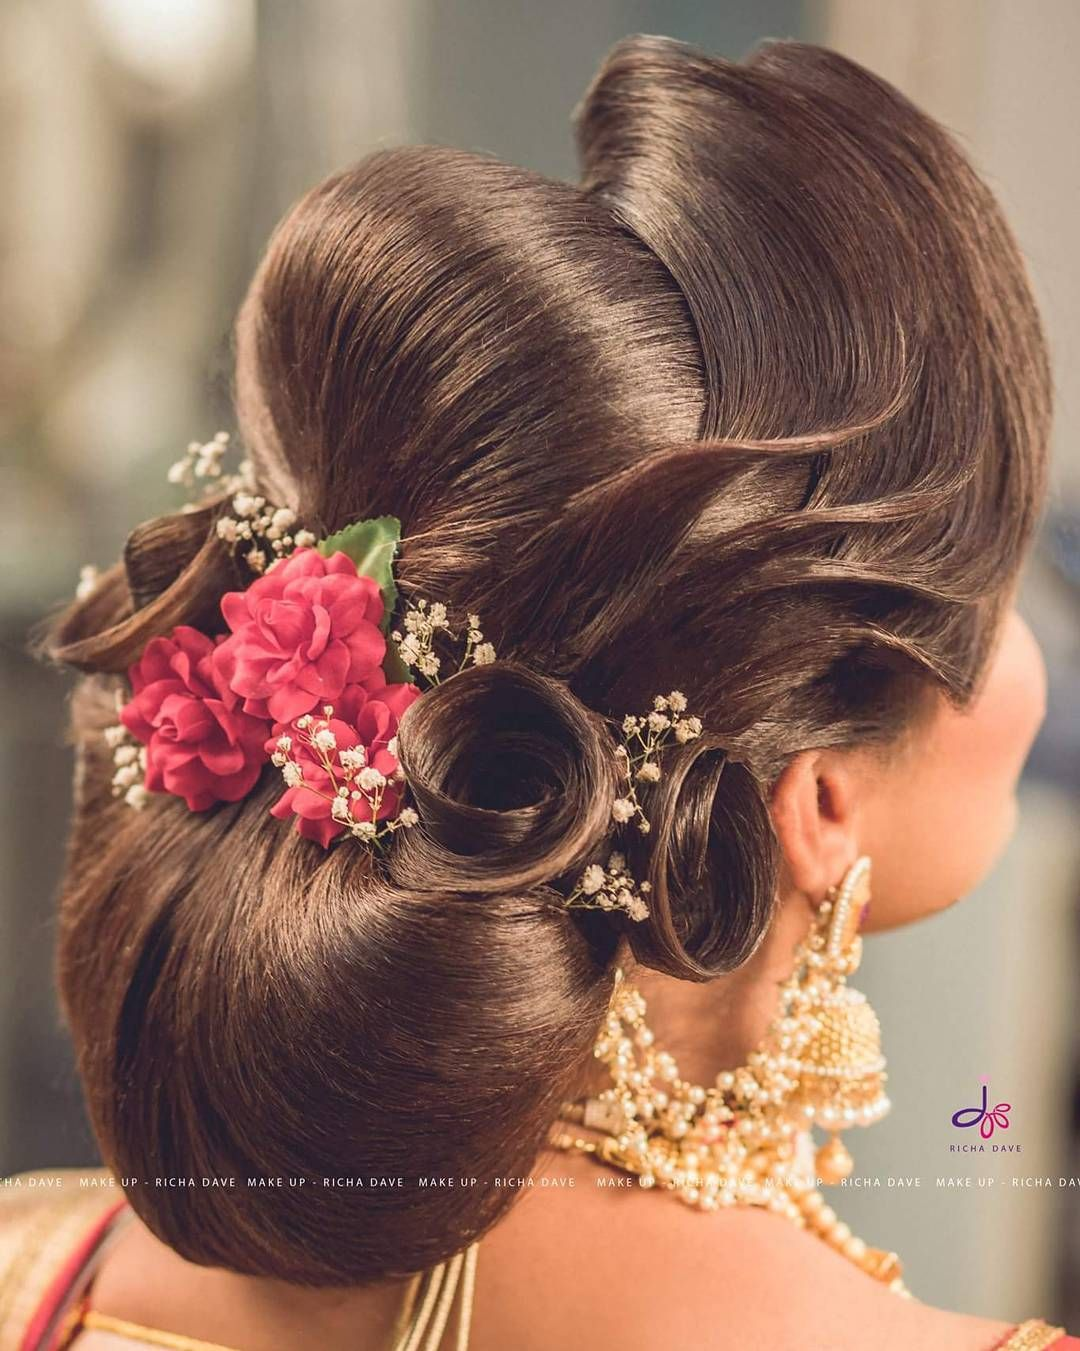 Bridal Hairstyle Https Www Wishnwed Com Blog Bridal Hairstyles For The Modern Indian Bride Hair Styles Long Hair Styles Bridal Hairdo